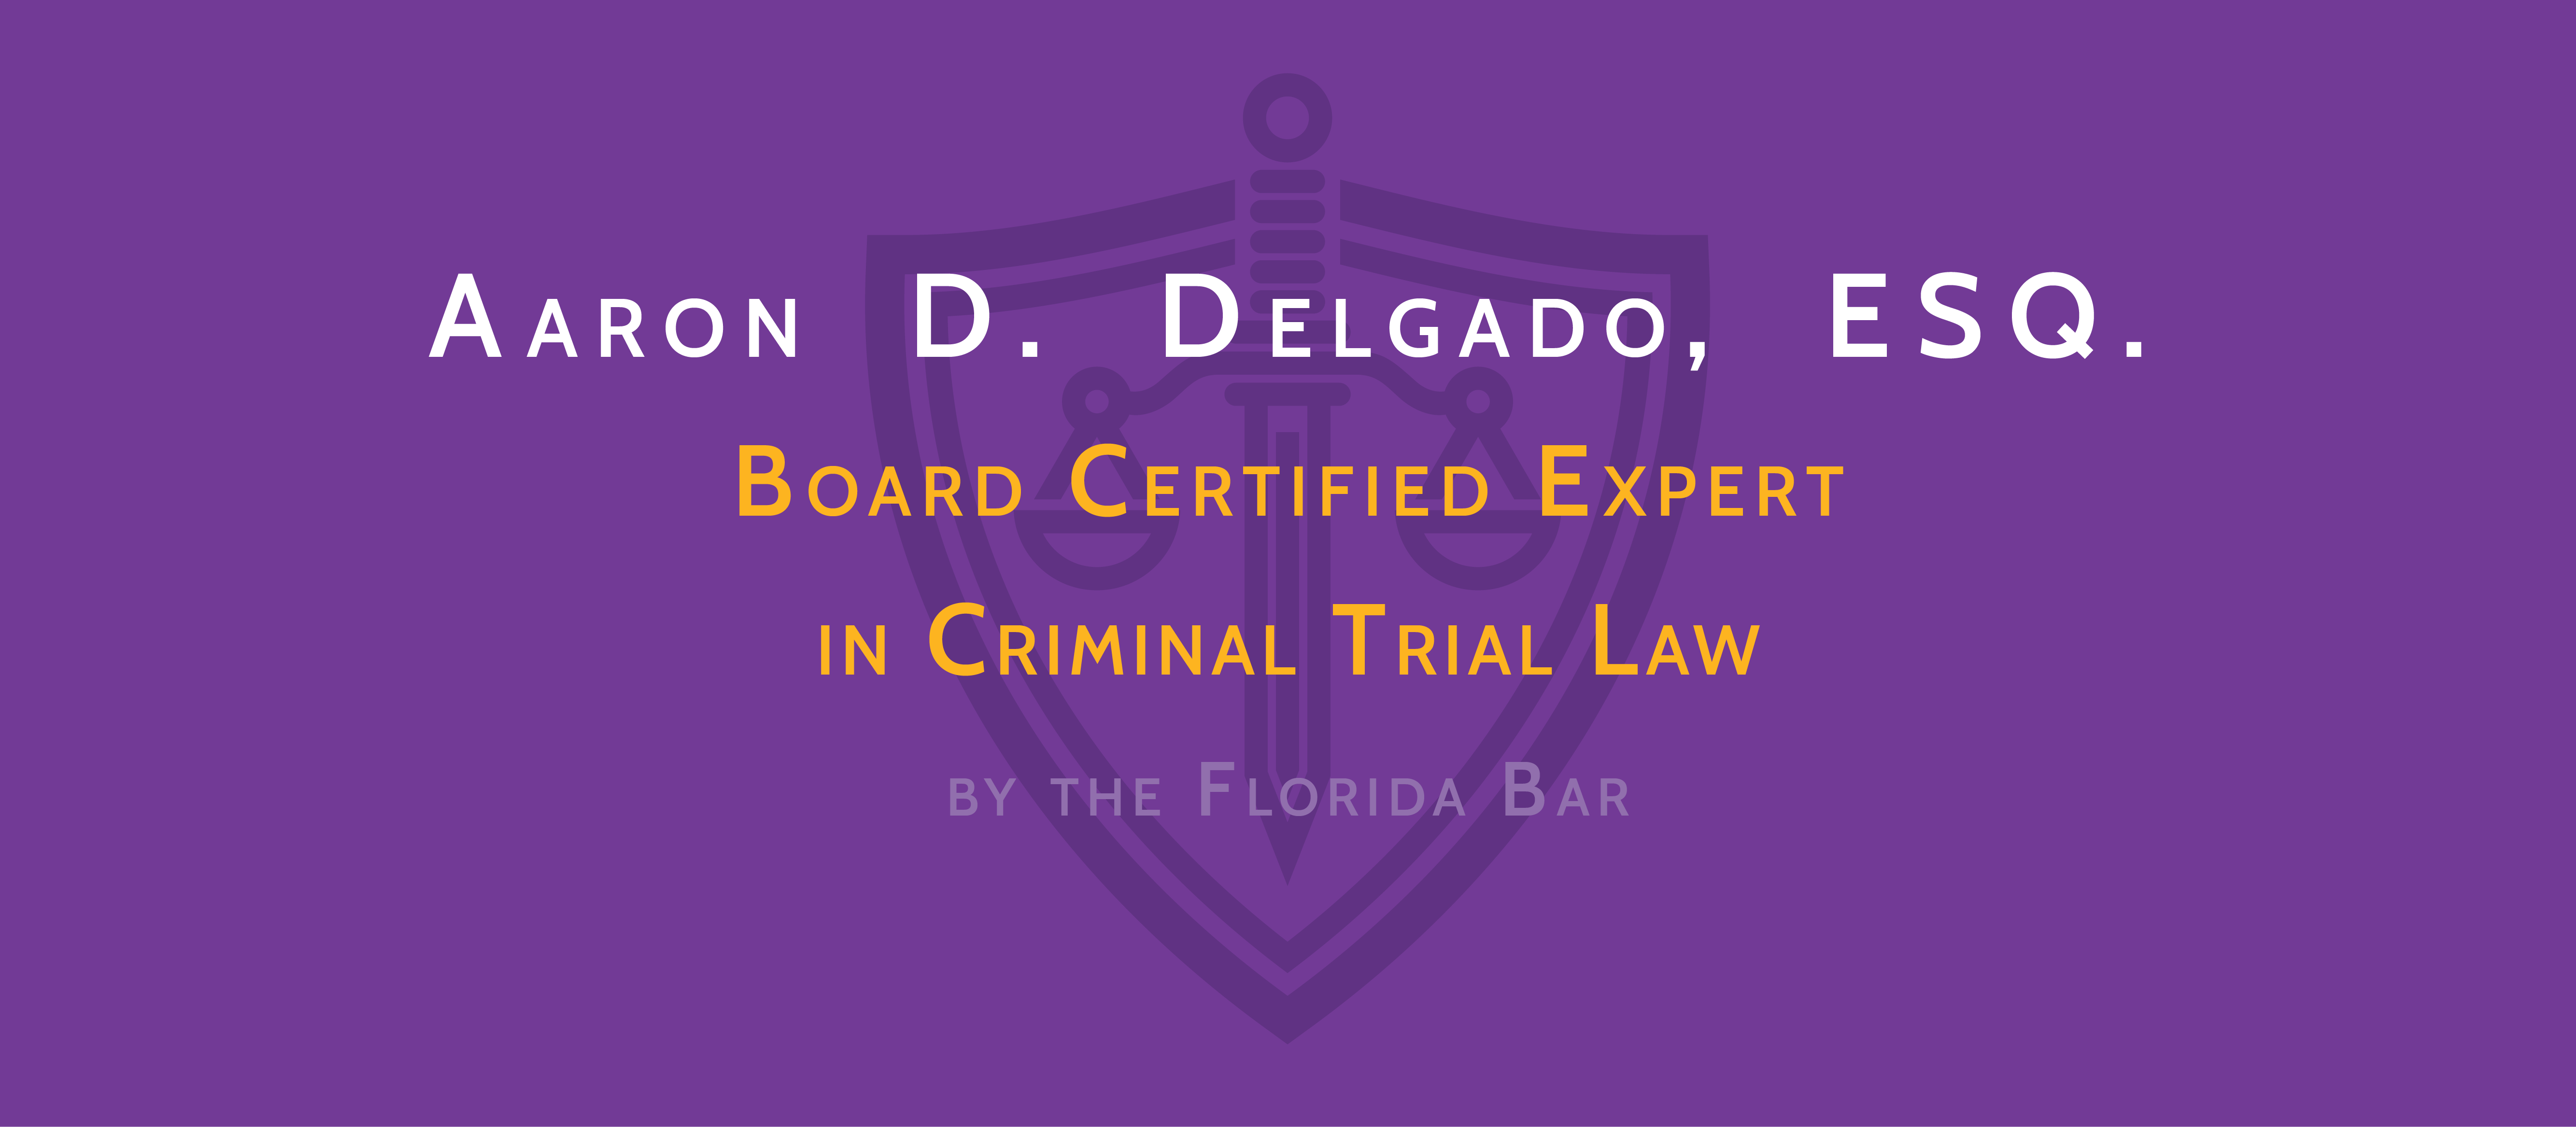 Board Certified Expert Criminal Trial Lawyer